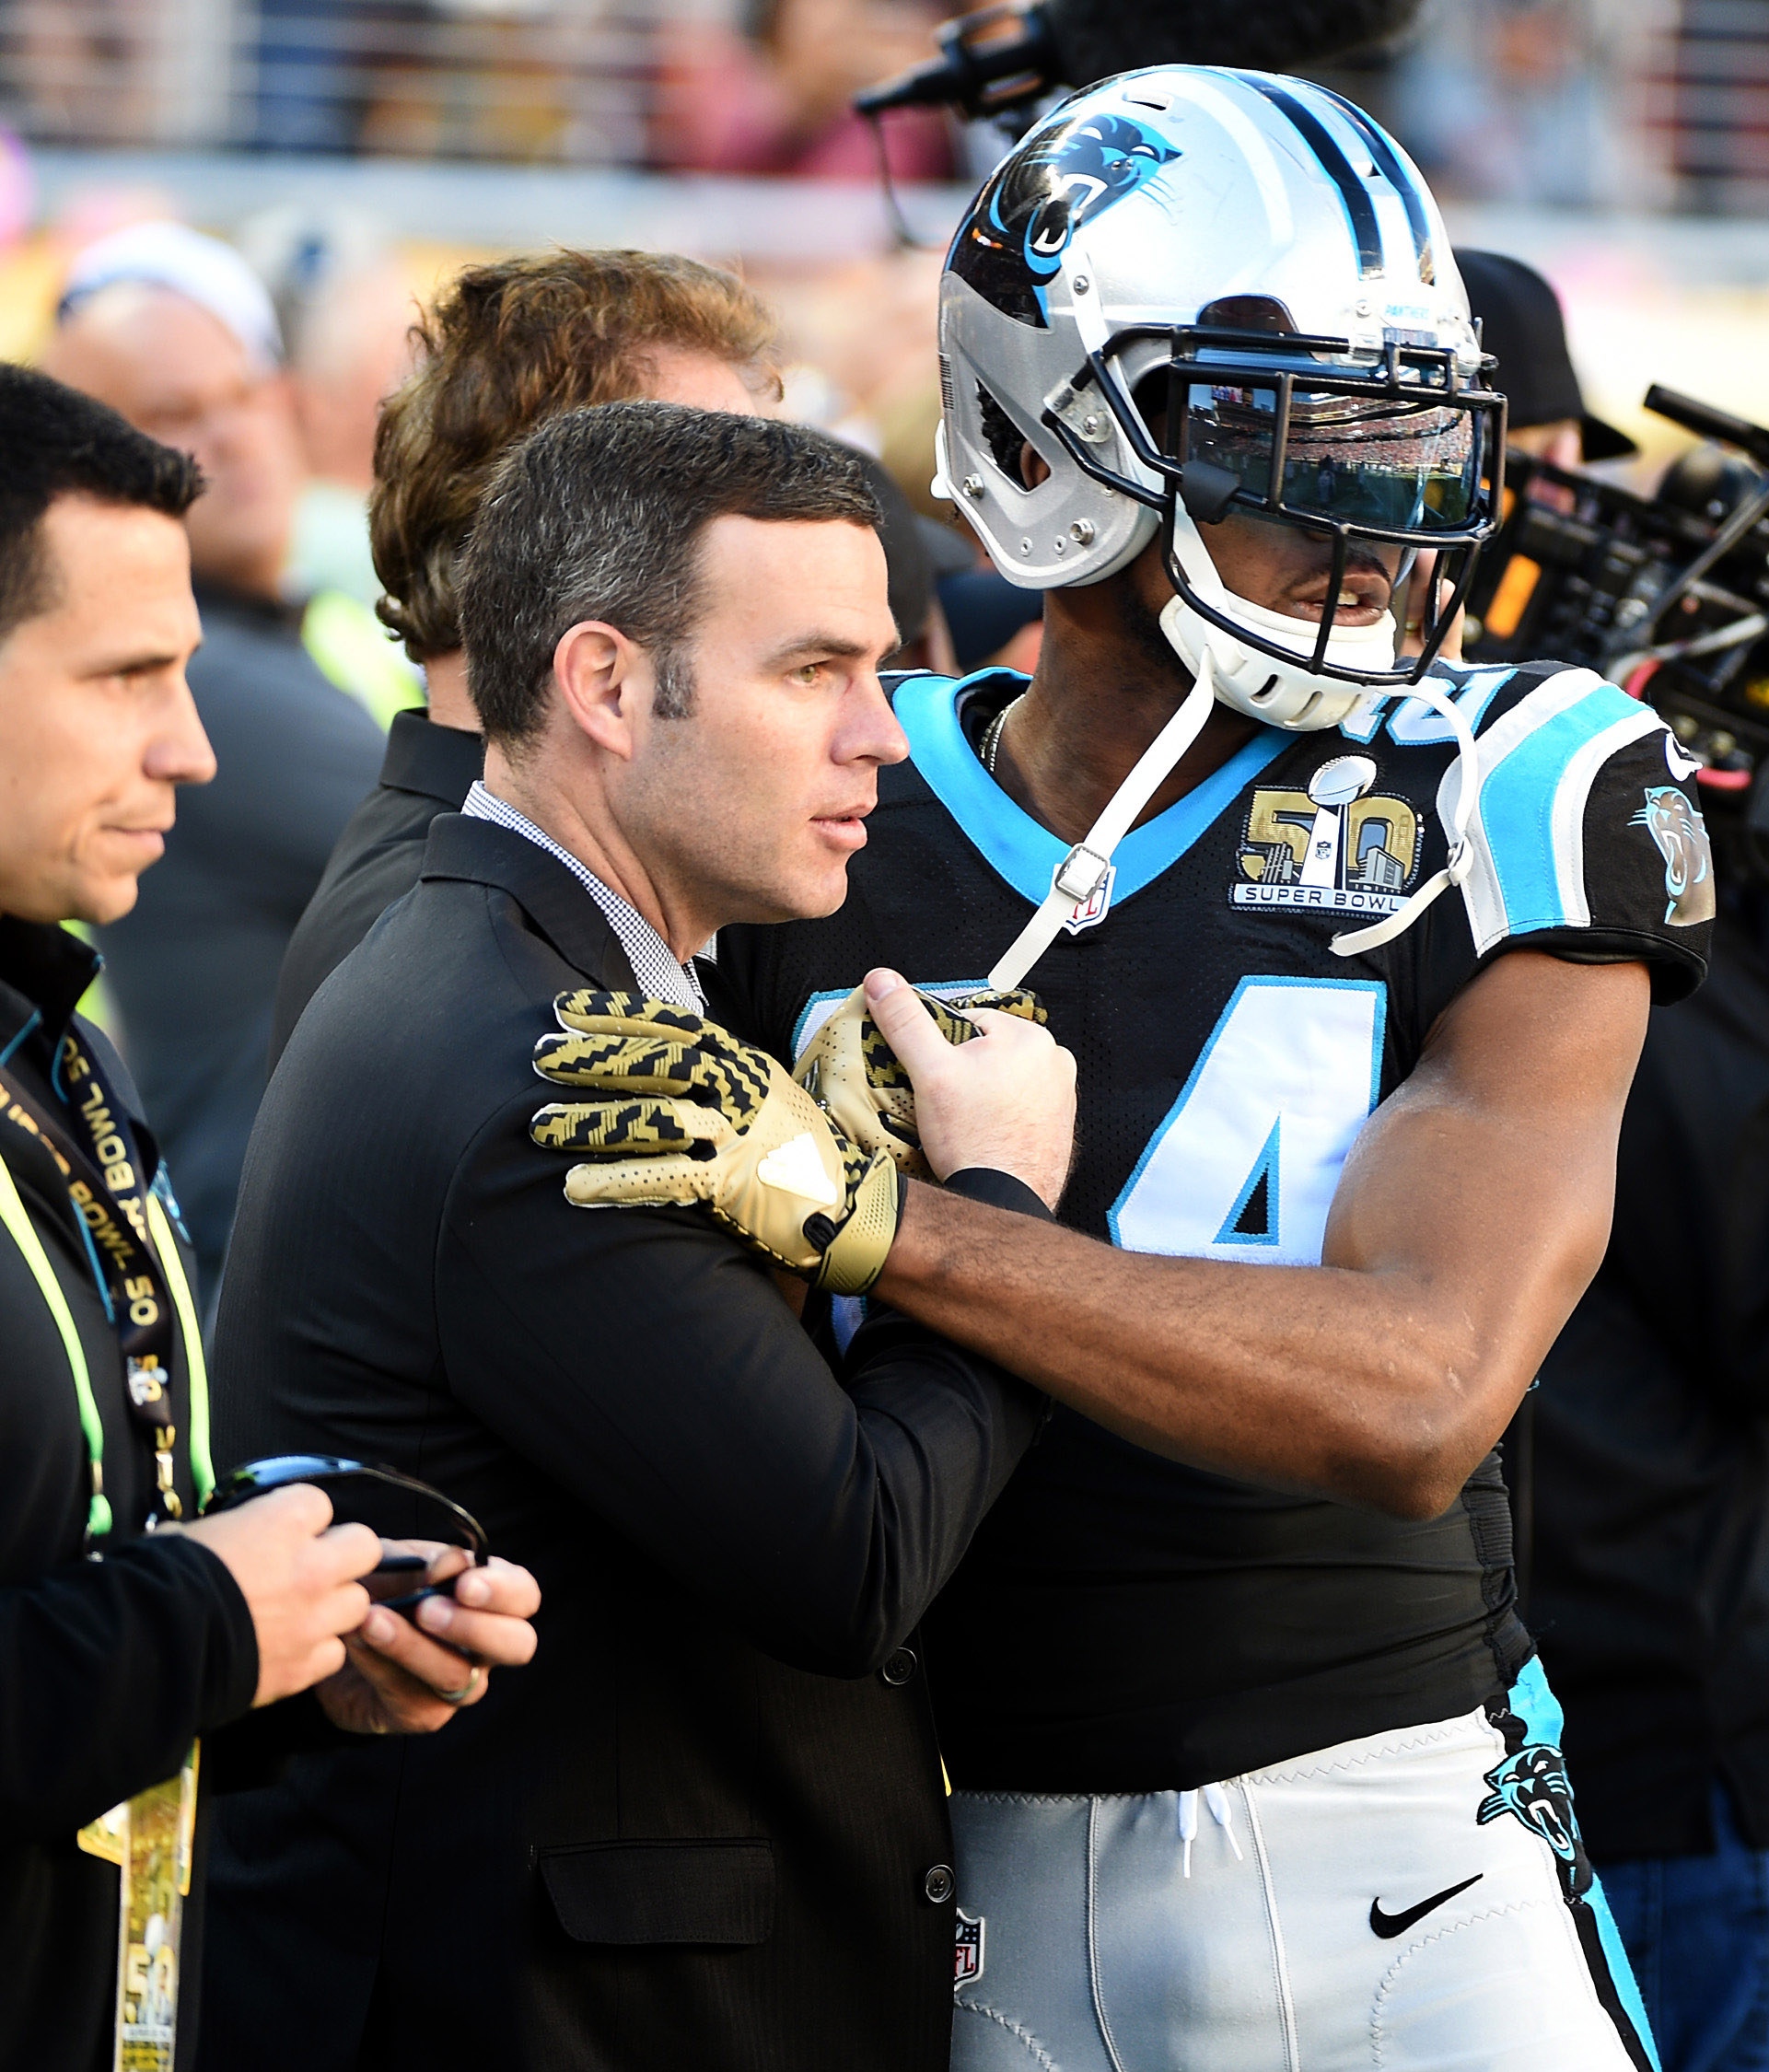 Carolina Panthers assistant general manager Brandon Beane, left, and cornerback Josh Norman, right, greet one another prior to action in Super Bowl 50. (Charlotte Observer)